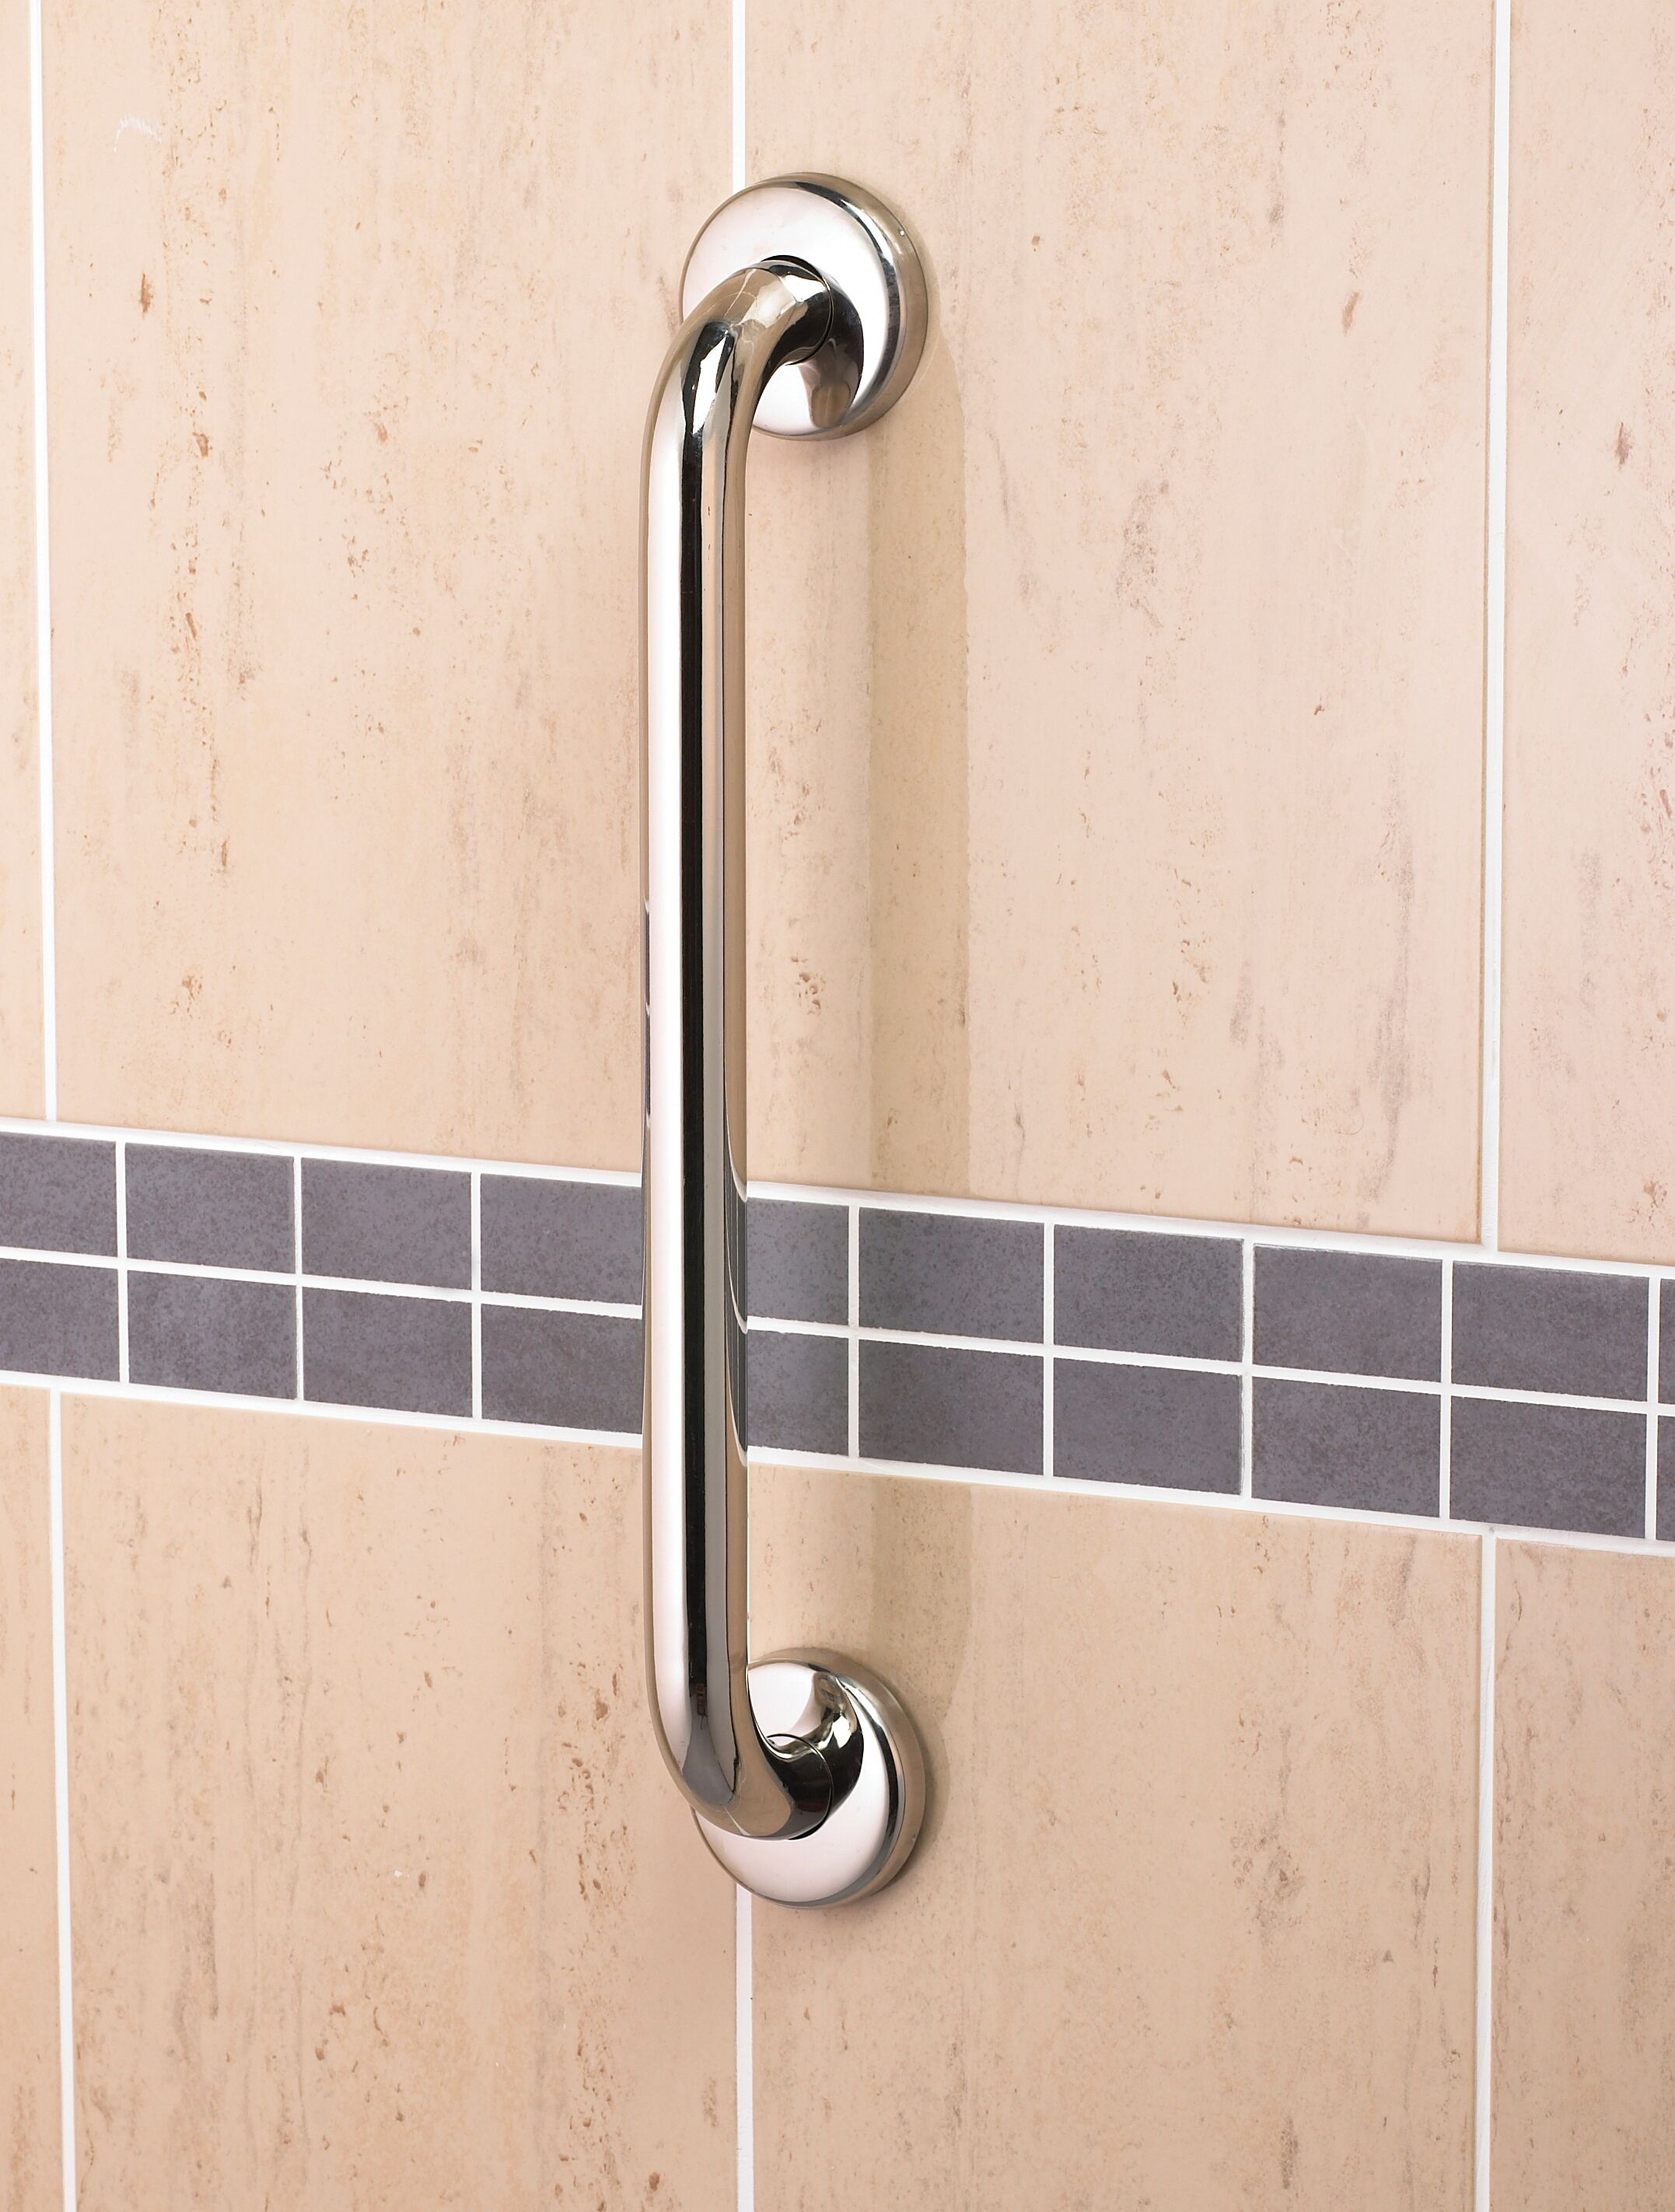 Standard grab rail | Bathing | Pinterest | Products